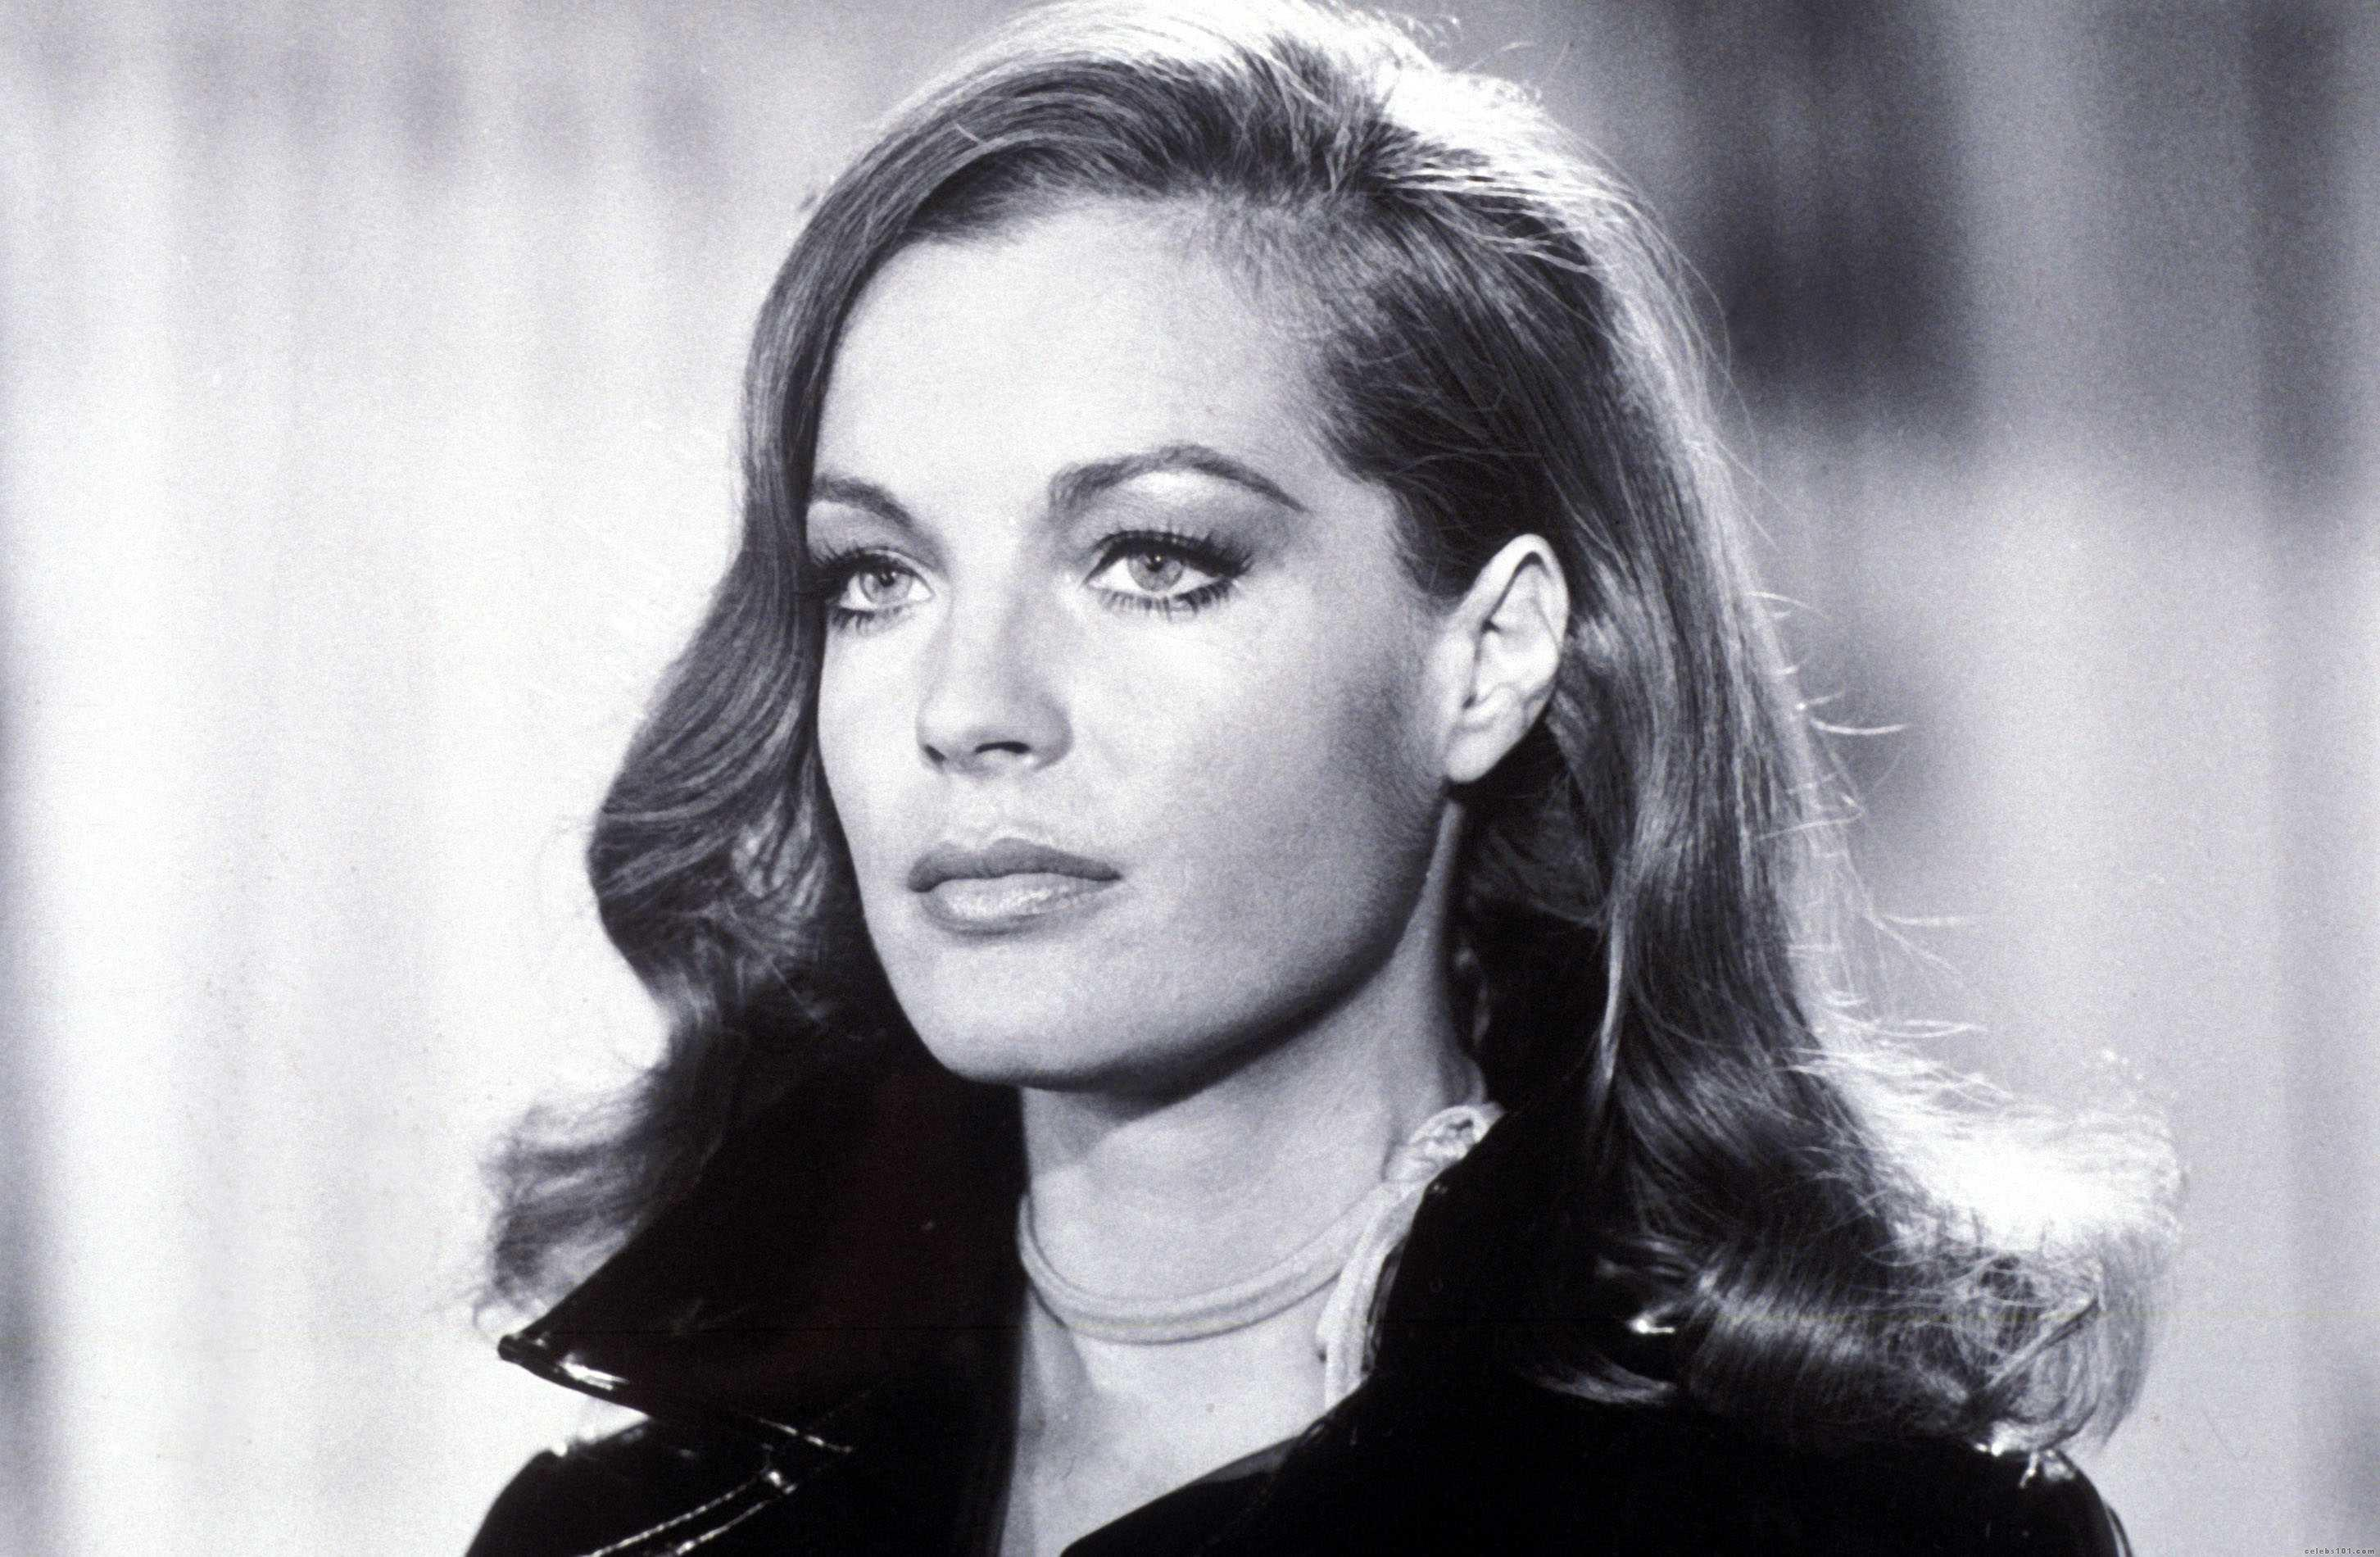 30 images about ROMY SCHNEIDER on We Heart It | See more about Romy  Schneider